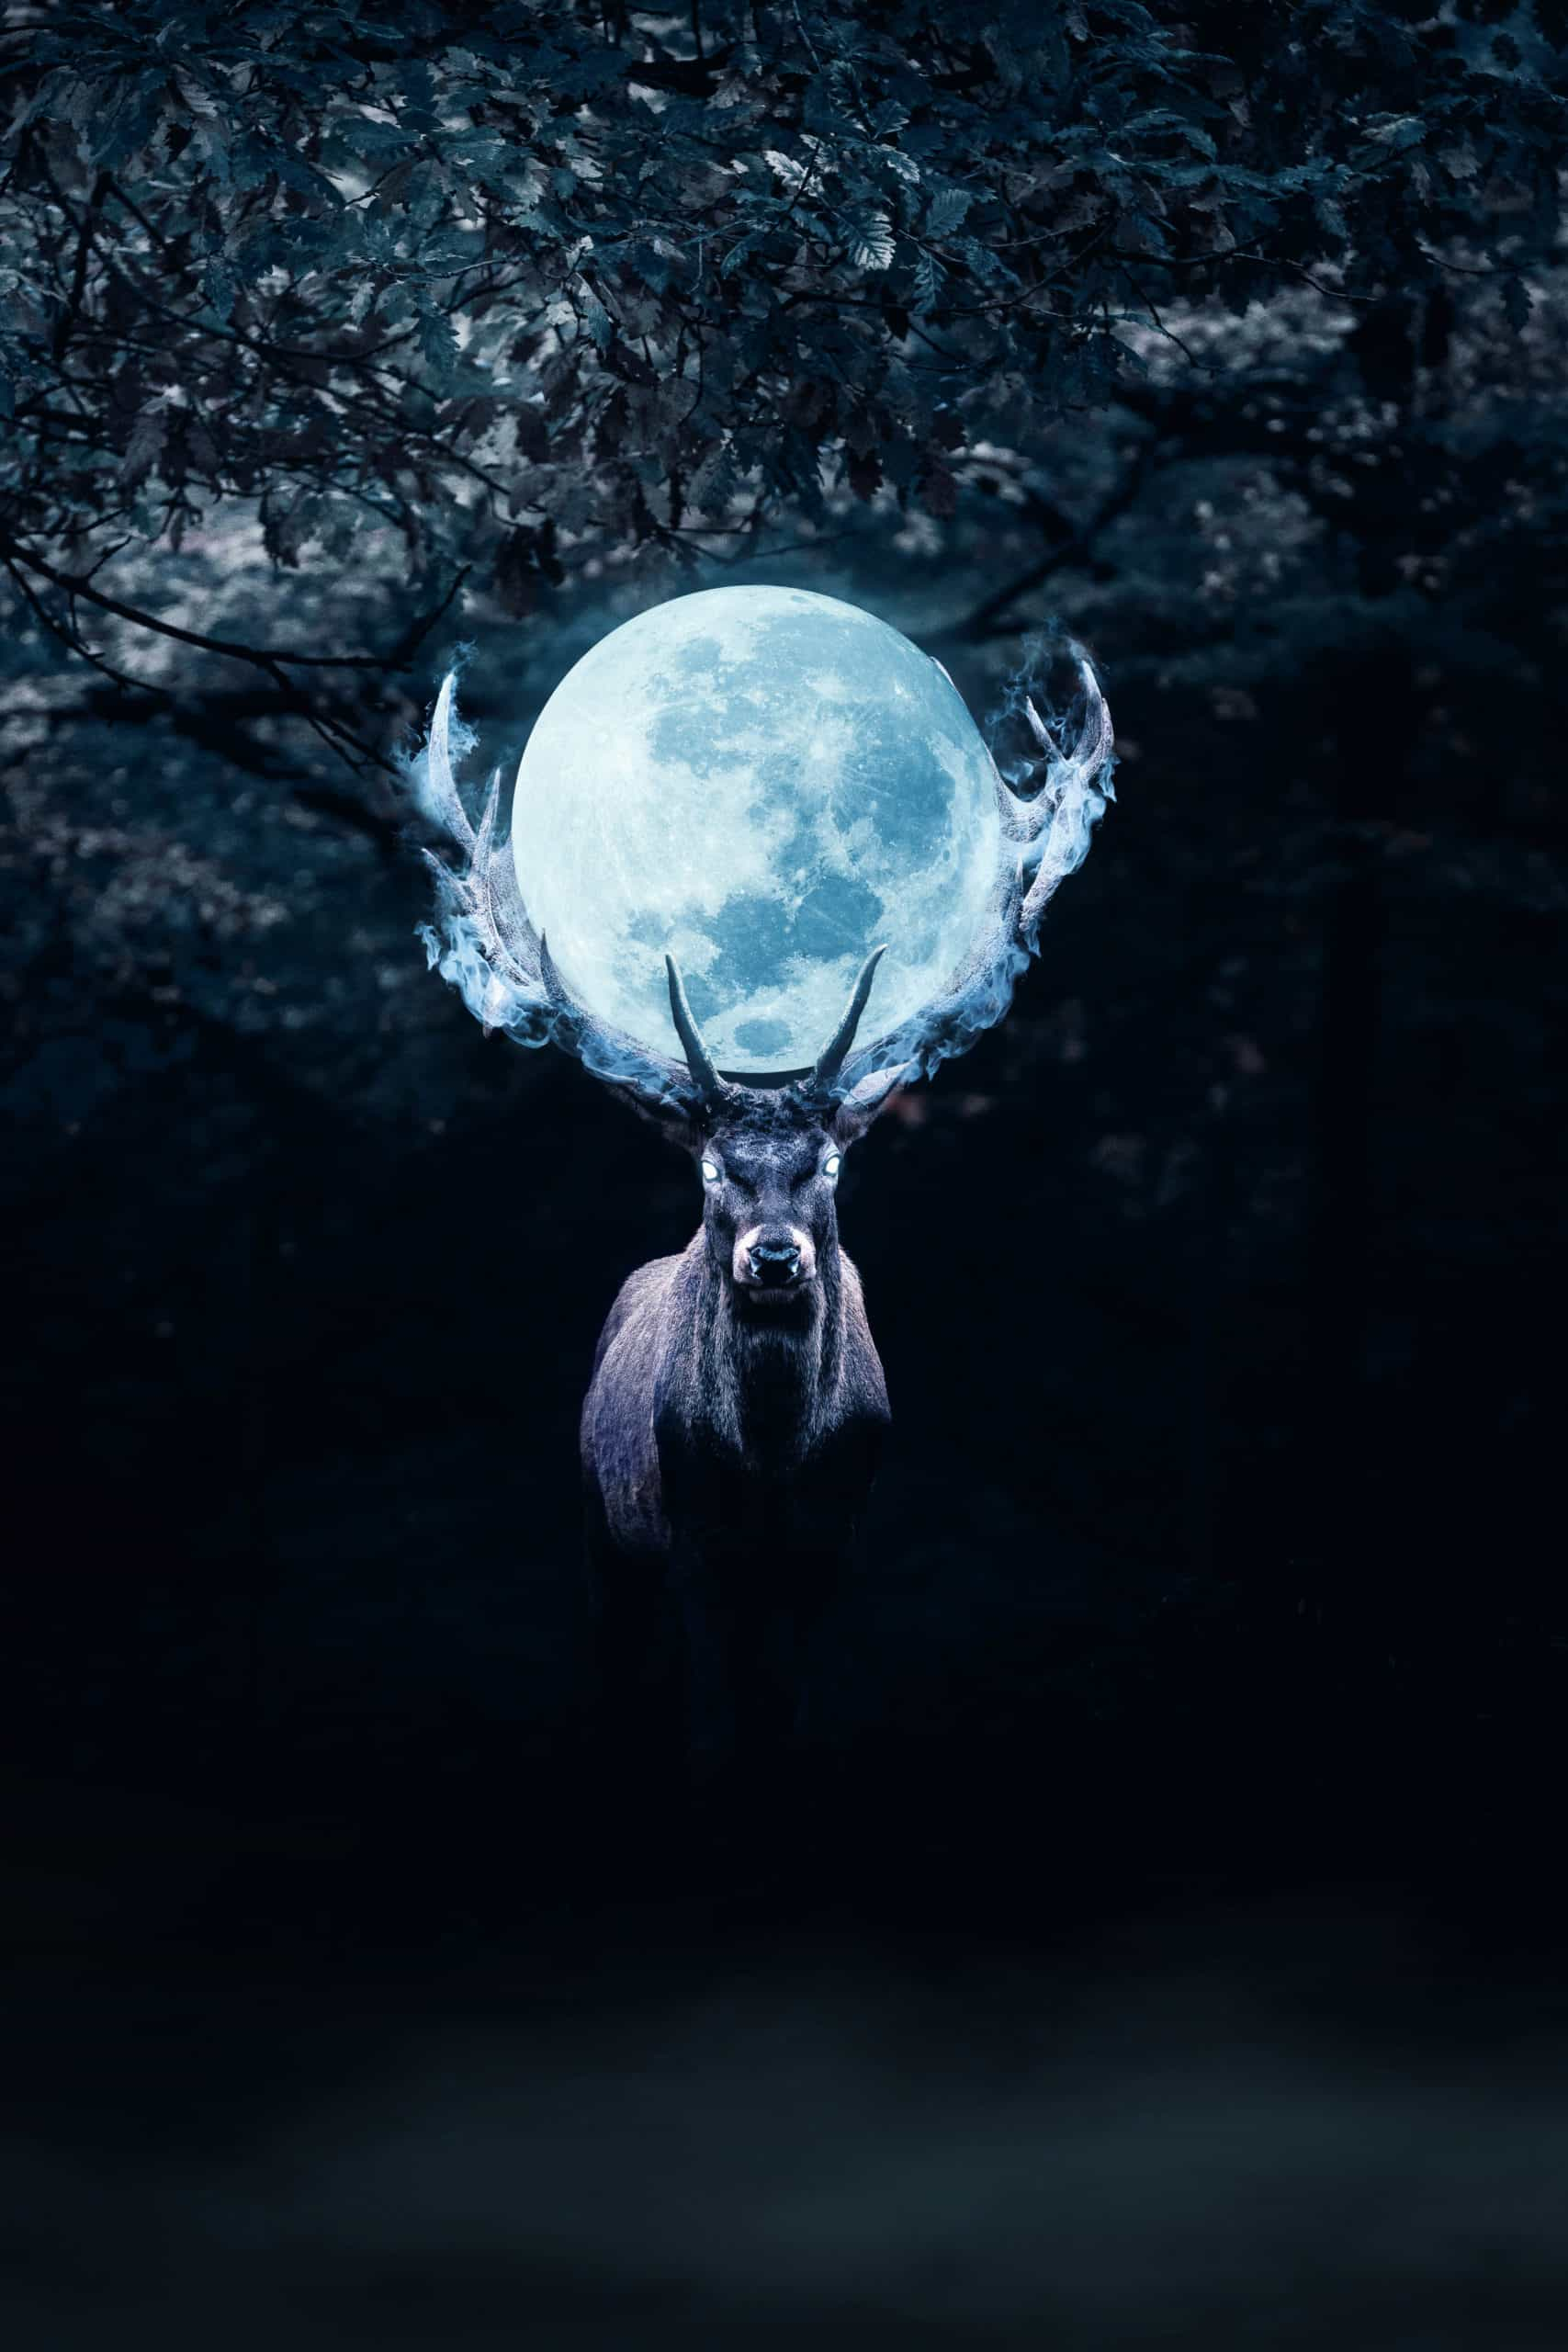 Mysterious Deer in Night Photoshop Manipulation